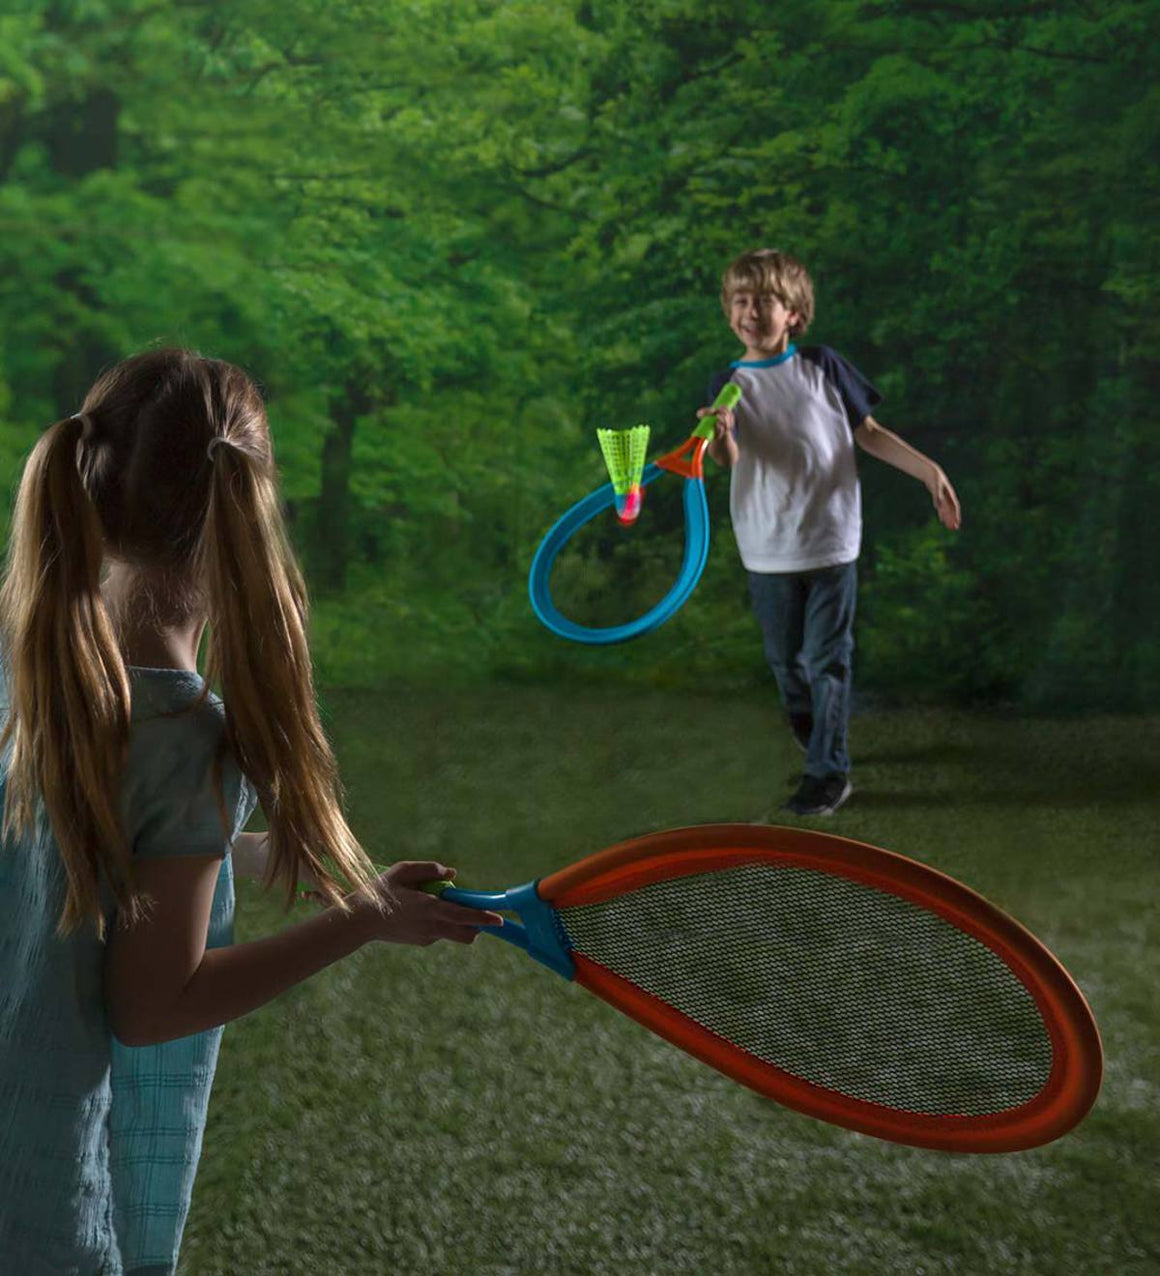 Hearth Song Toys Hearth Song LED Light-Up Oversized Badminton Set